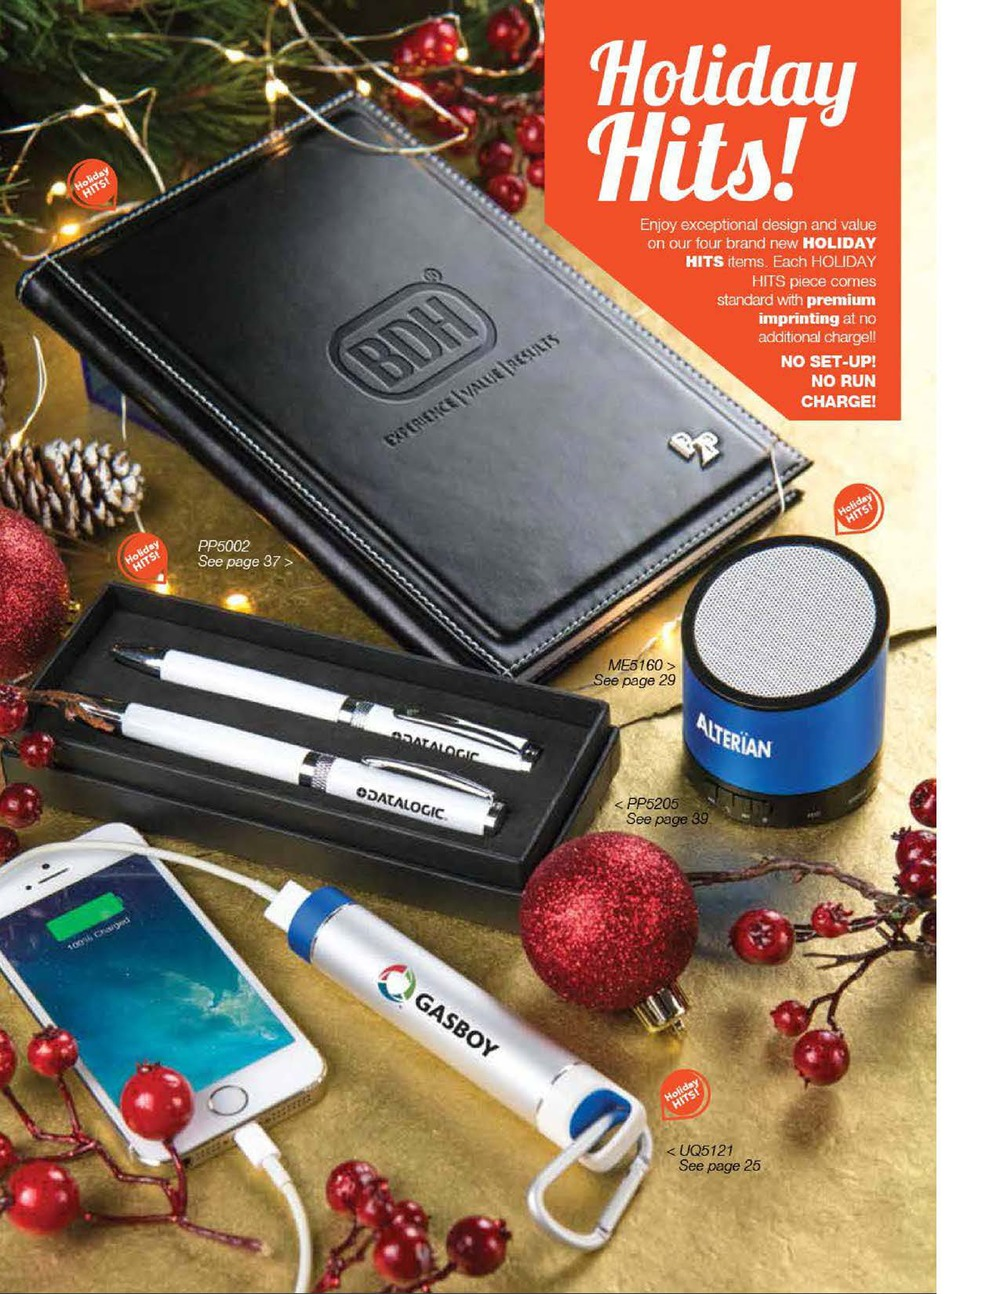 FREE SETUP Items! Click for full holiday catalog, though not all items have free setup.